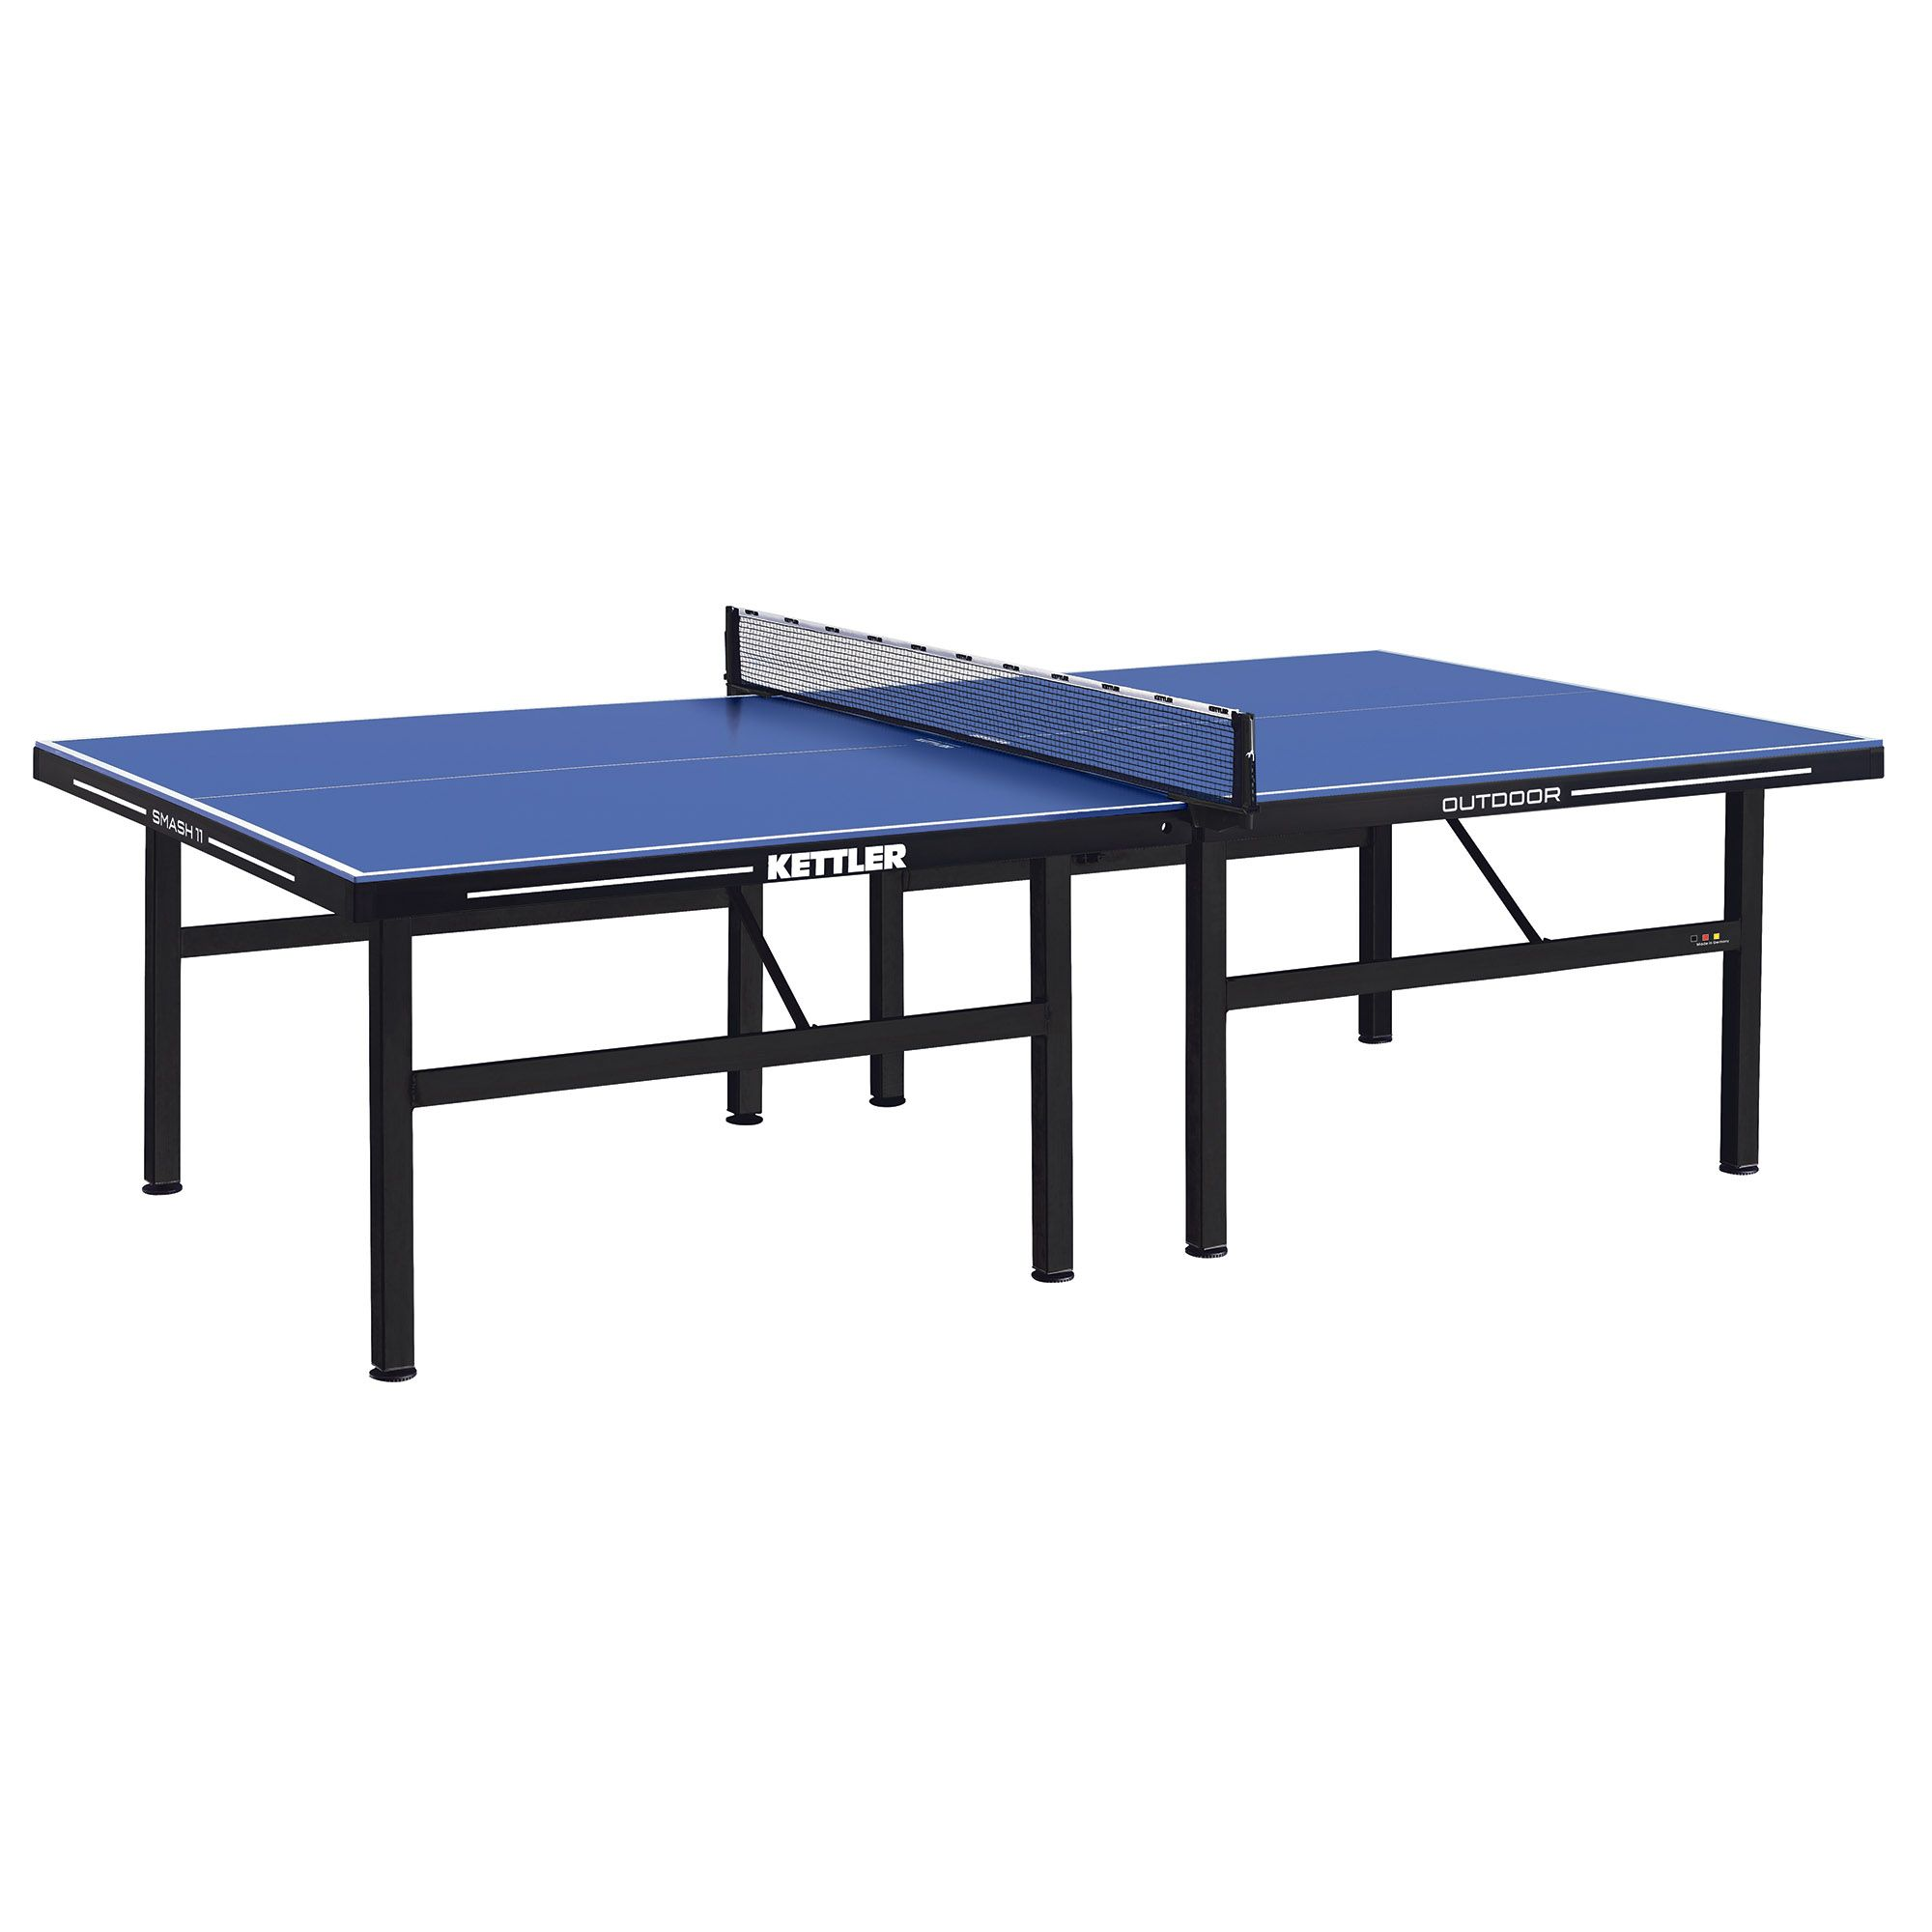 Kettler smash 11 0 outdoor table tennis table - Weatherproof table tennis table ...